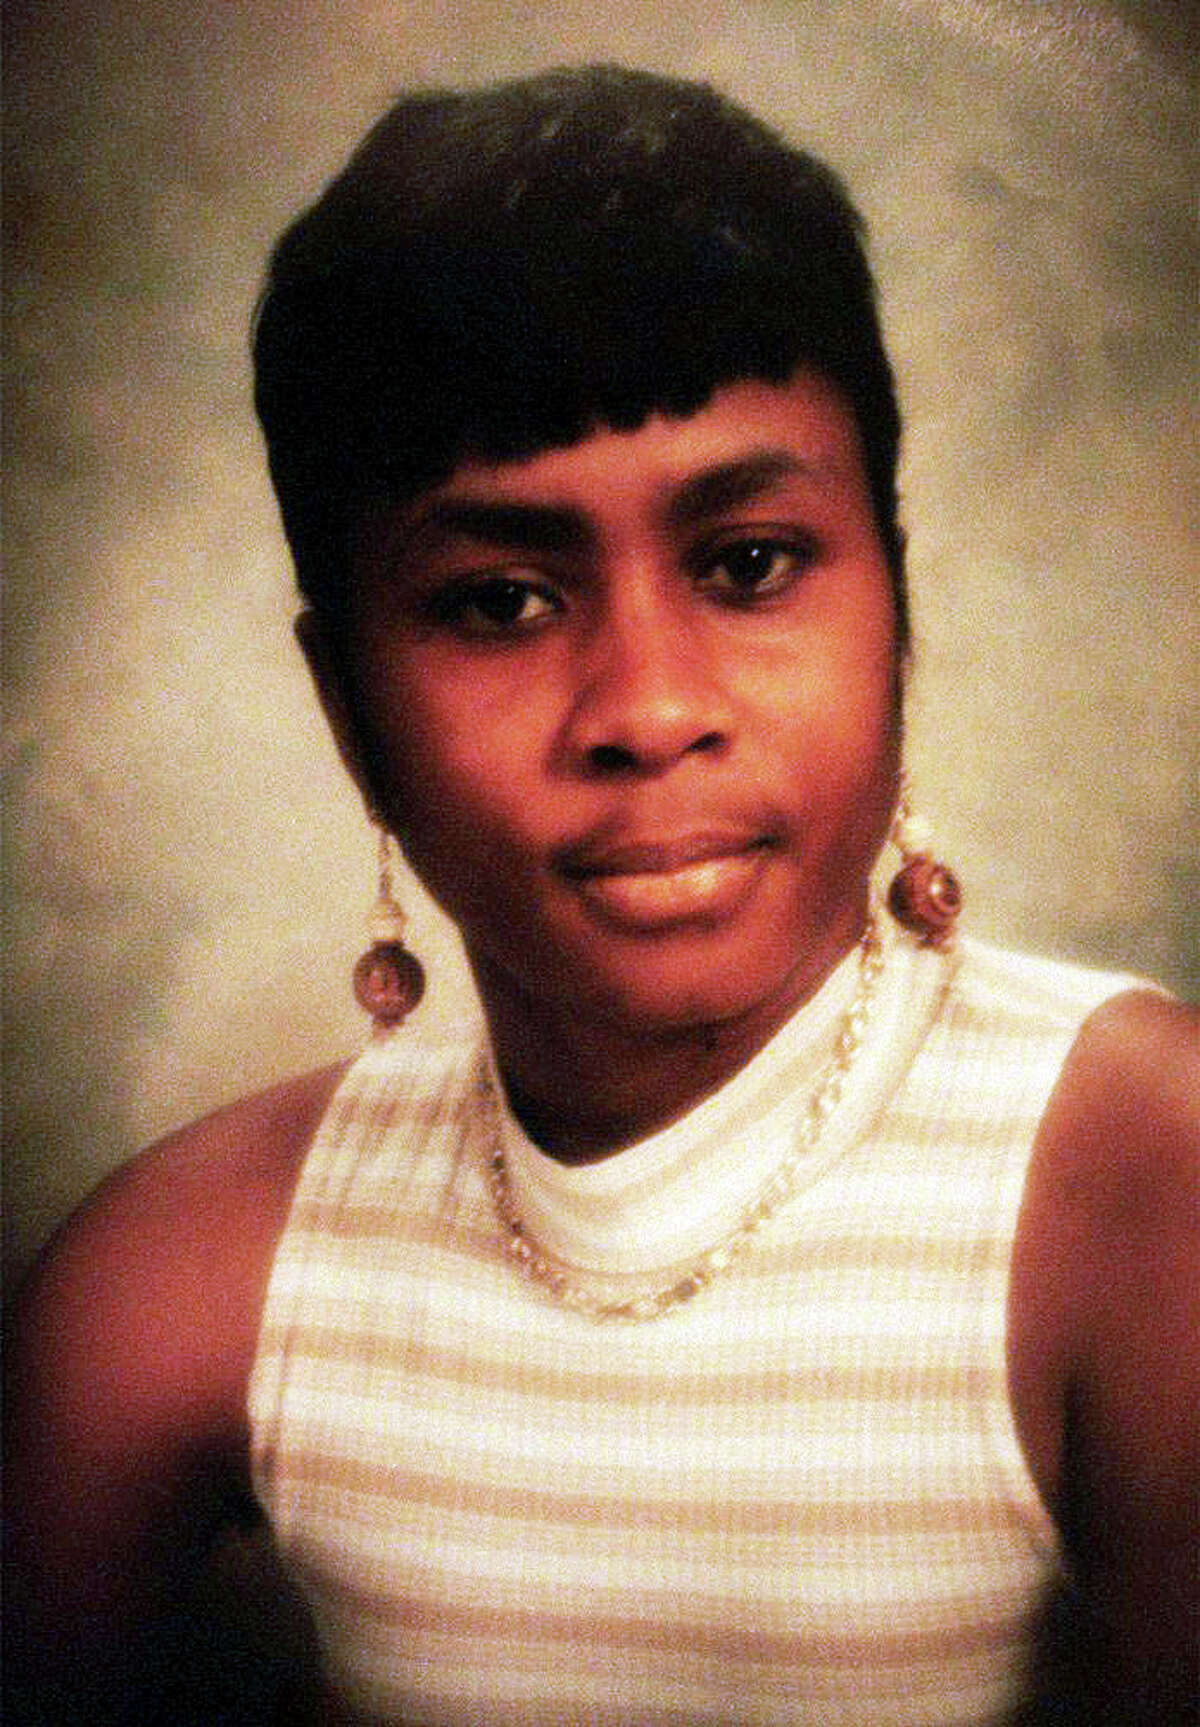 """Karen Clarke, who was shot and killed along with her eight year old son, Leroy """"B.J."""" Brown, in their Bridgeport, Conn. duplex on January 8, 1999."""